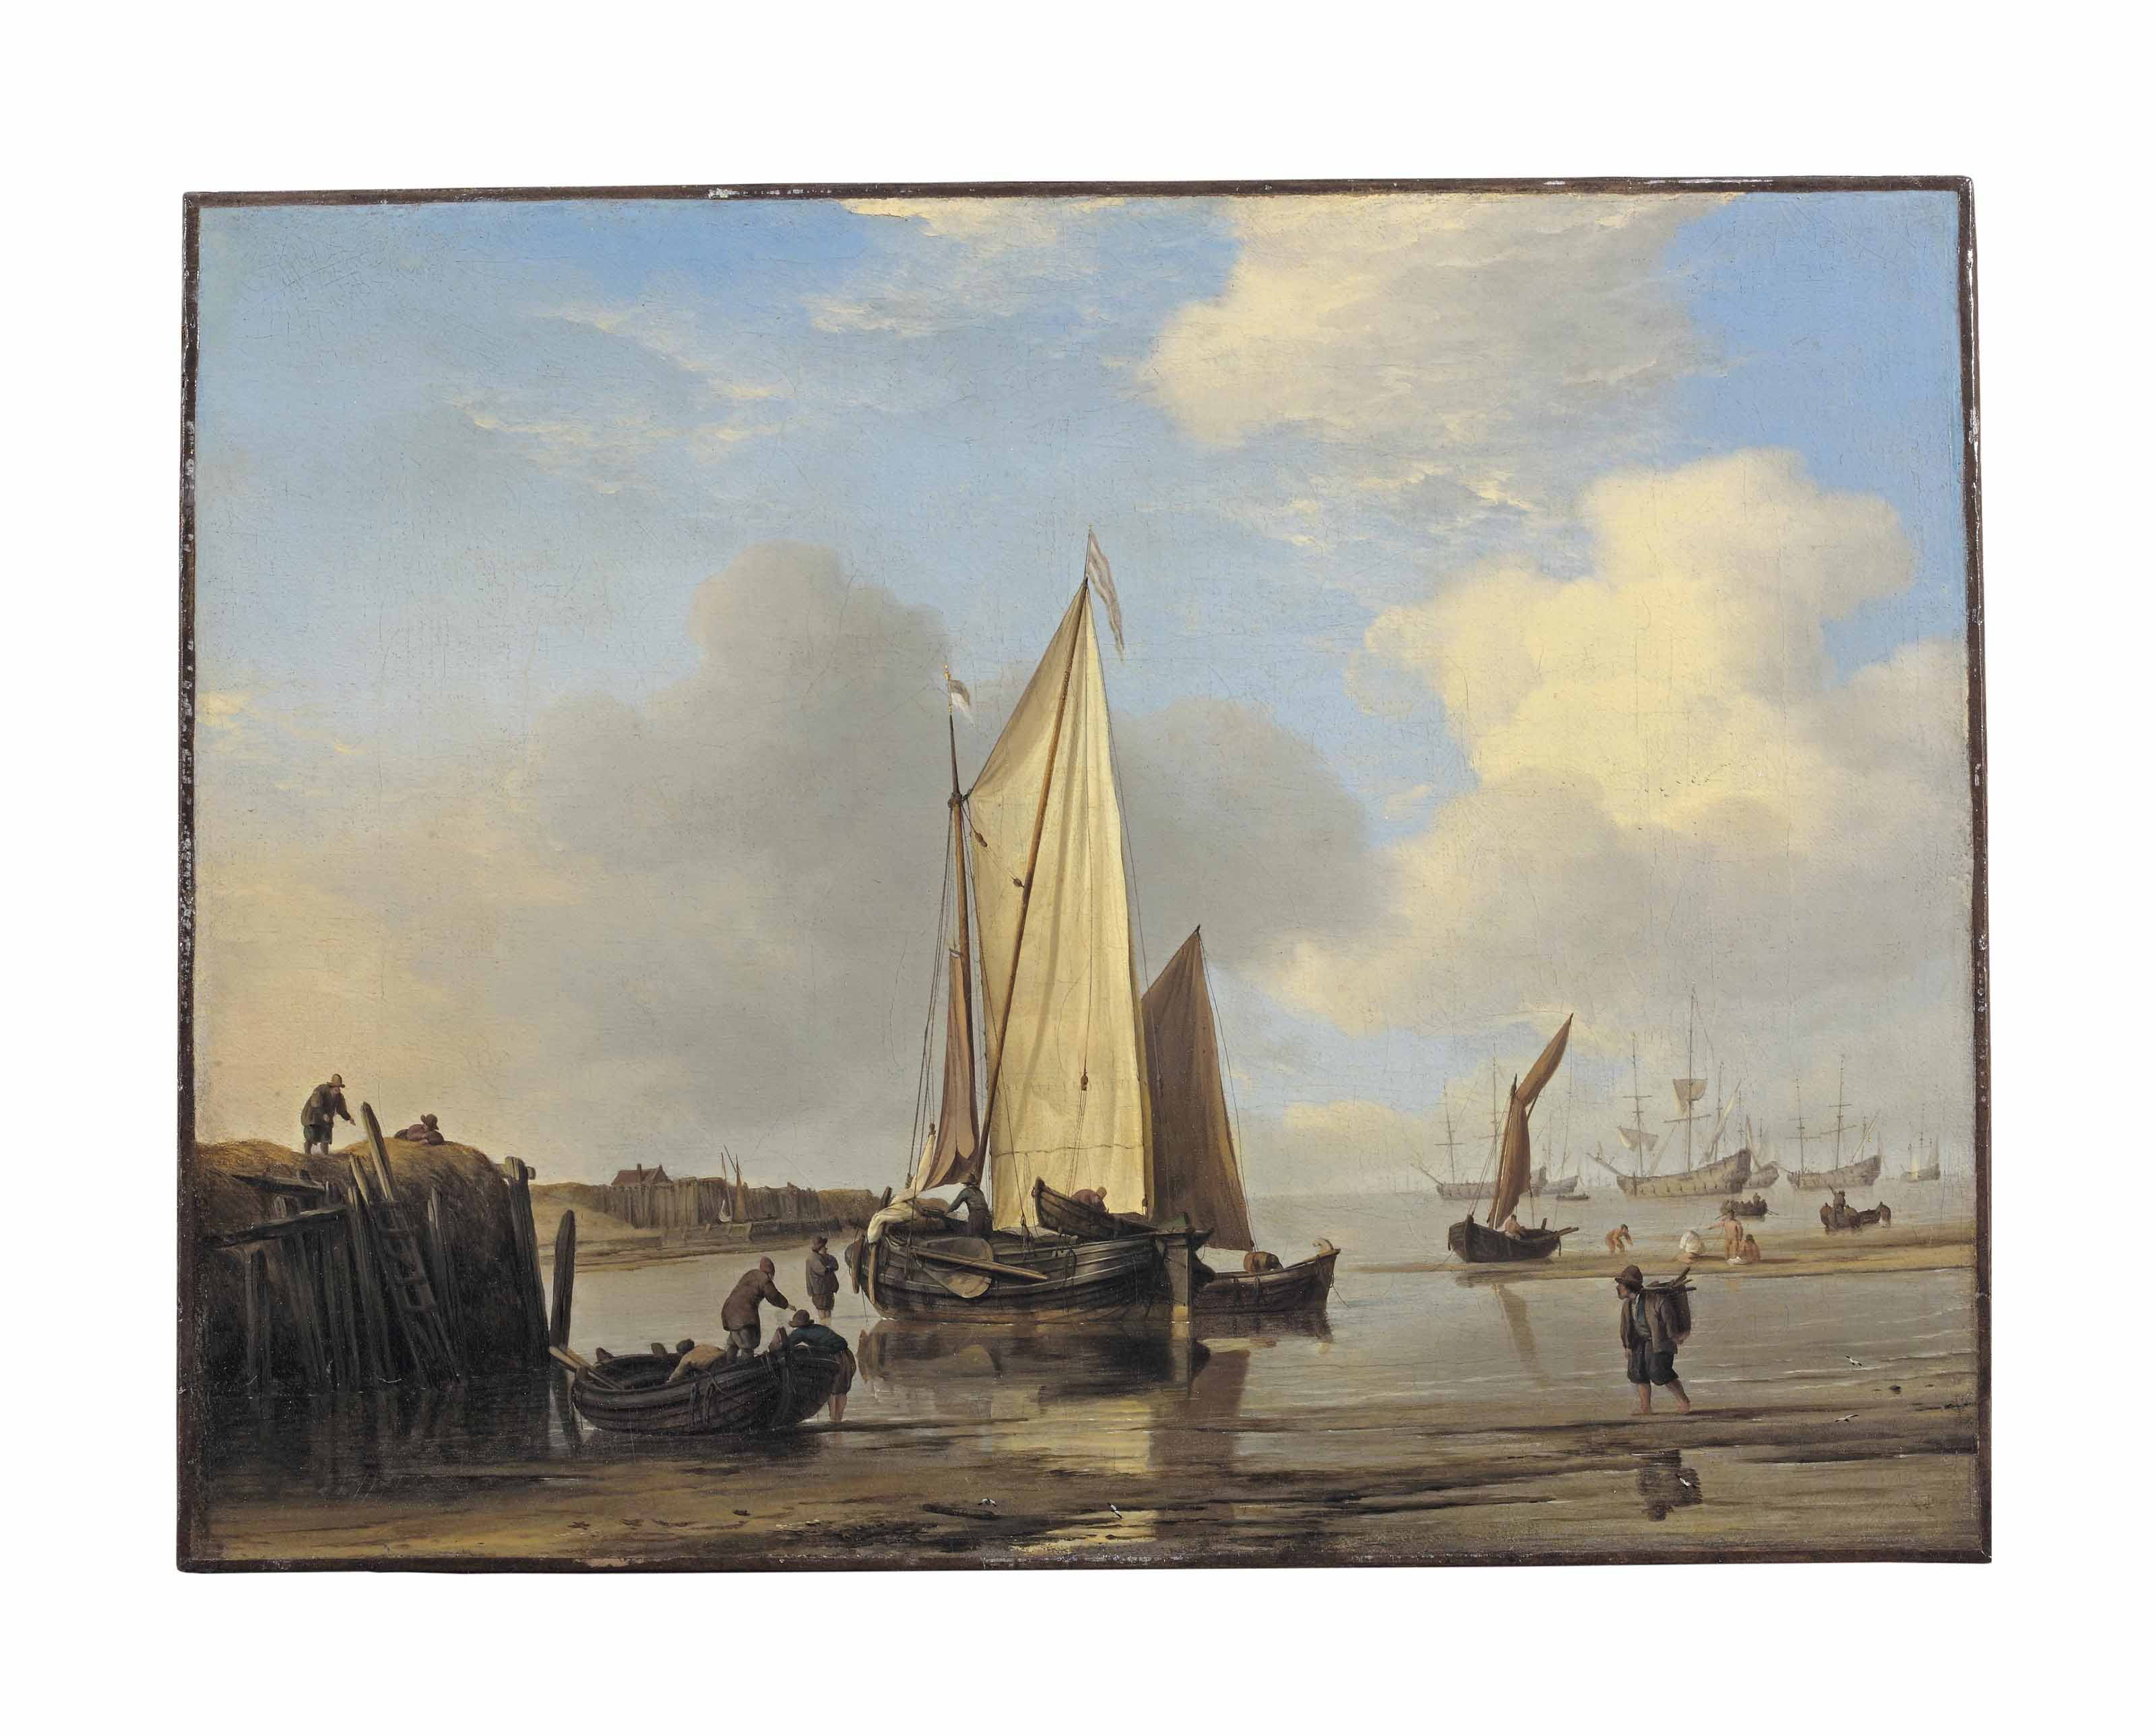 A kaag and other vessels off an inlet on the Dutch coast